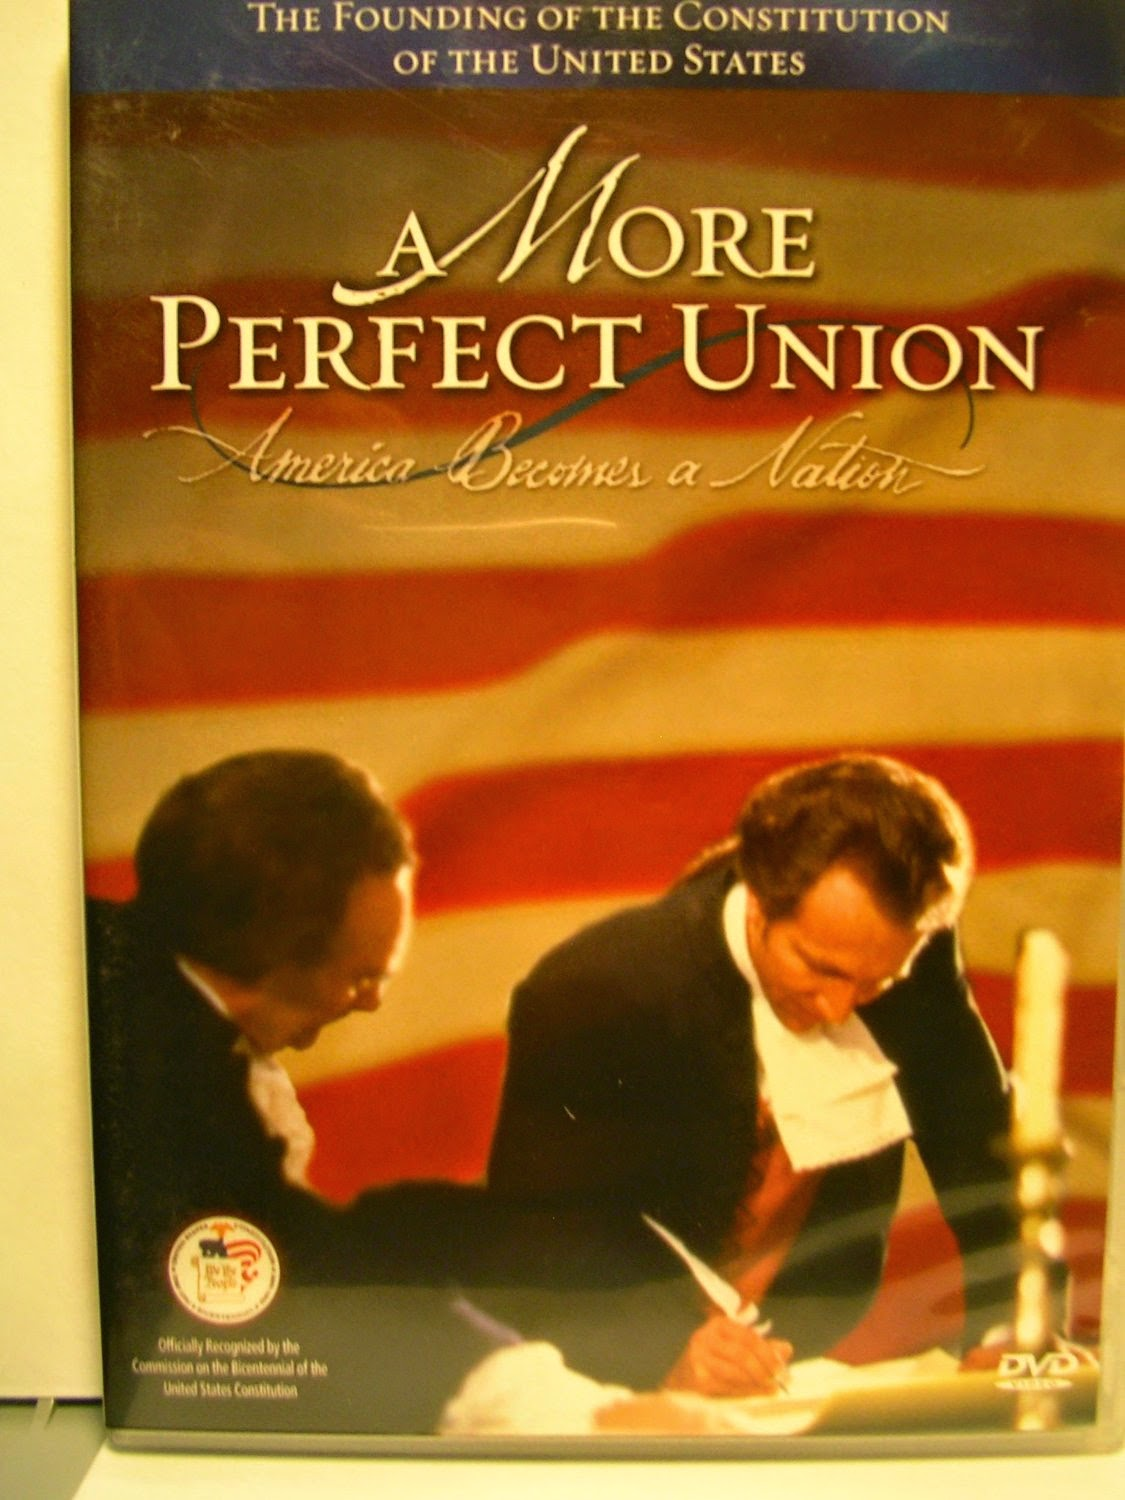 Sparks Commentary George Washington The Man And The Movies